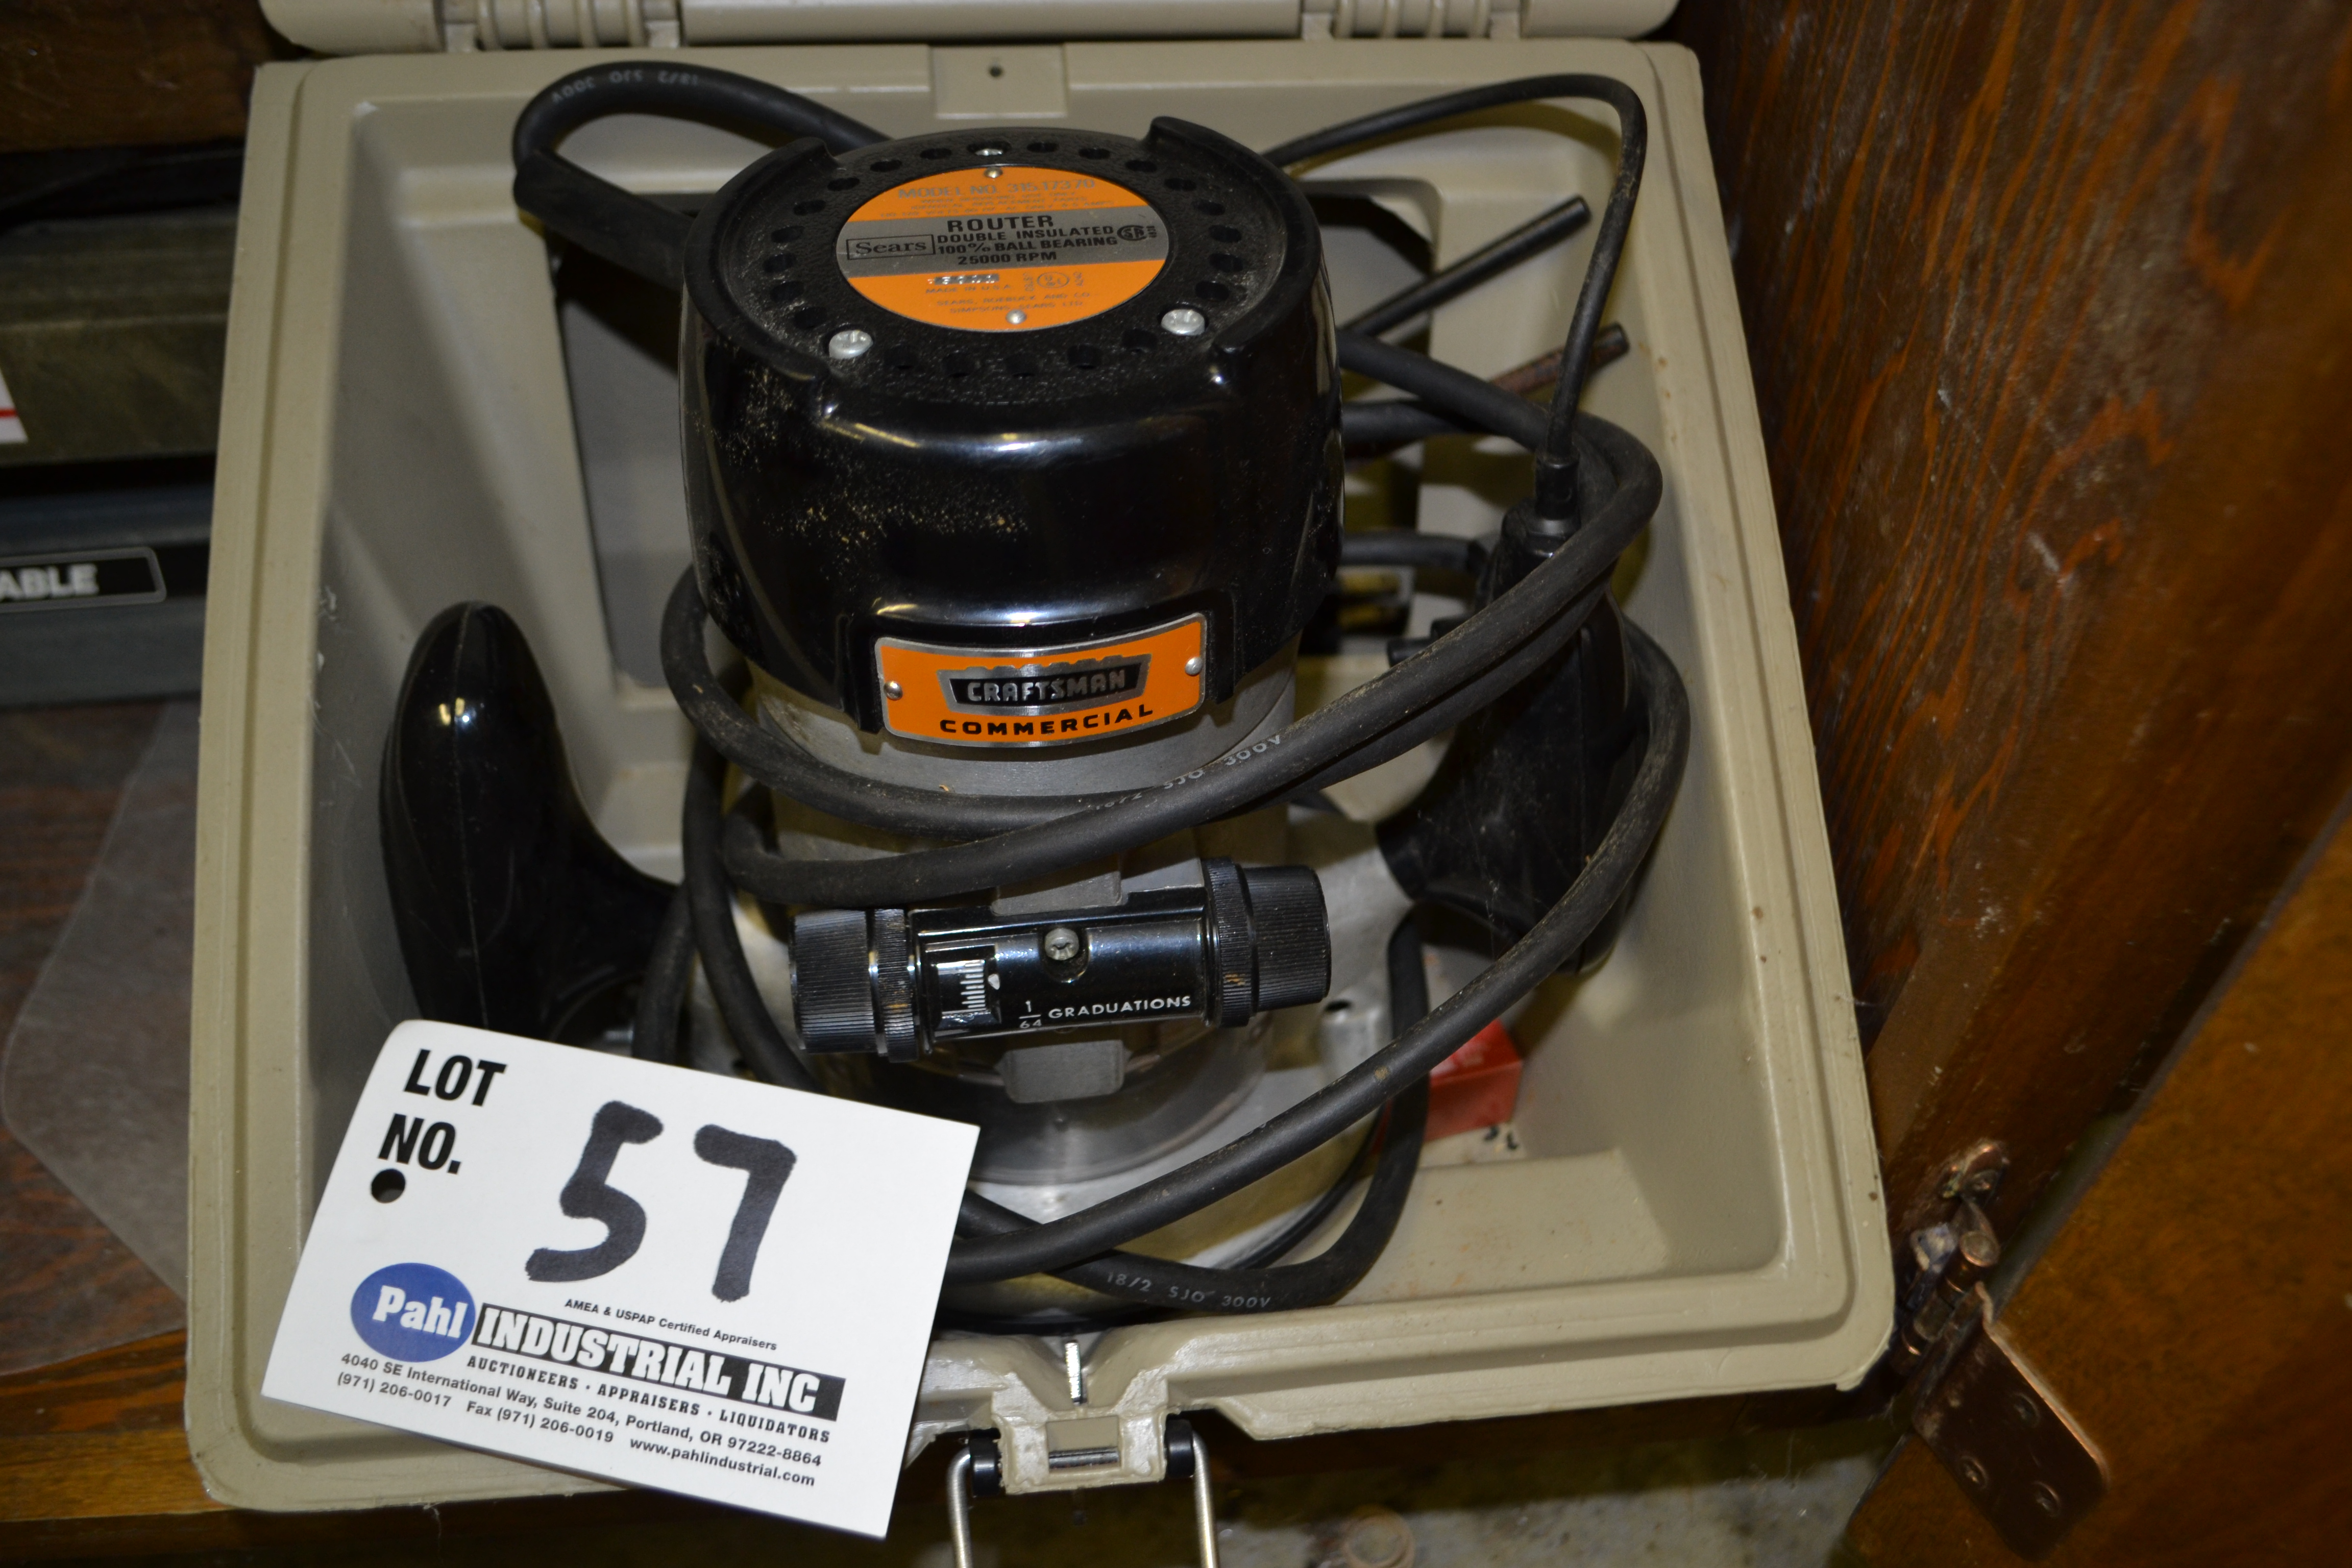 Craftsman Model 315.17370 Router 25,000 Rpm - Image 2 of 2